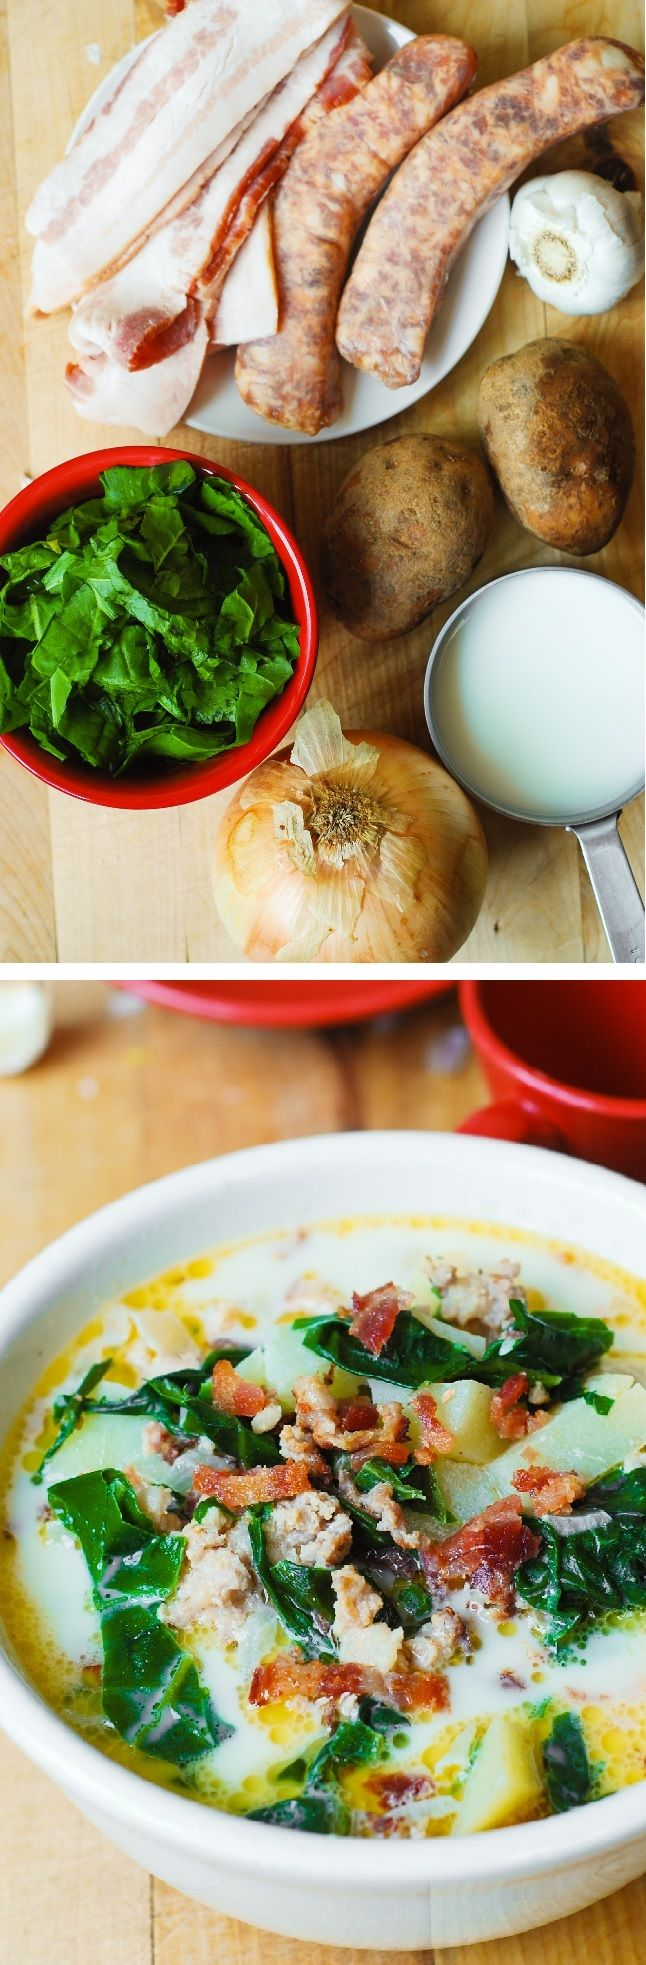 Delicious Olive Garden's Zuppa Toscana Soup made with Swiss Chard, Italian sausage (bratwursts will work too), potatoes, and bacon. Made in one pot, the soup takes only 40 minutes to make (including idle time while everything is simmering)!